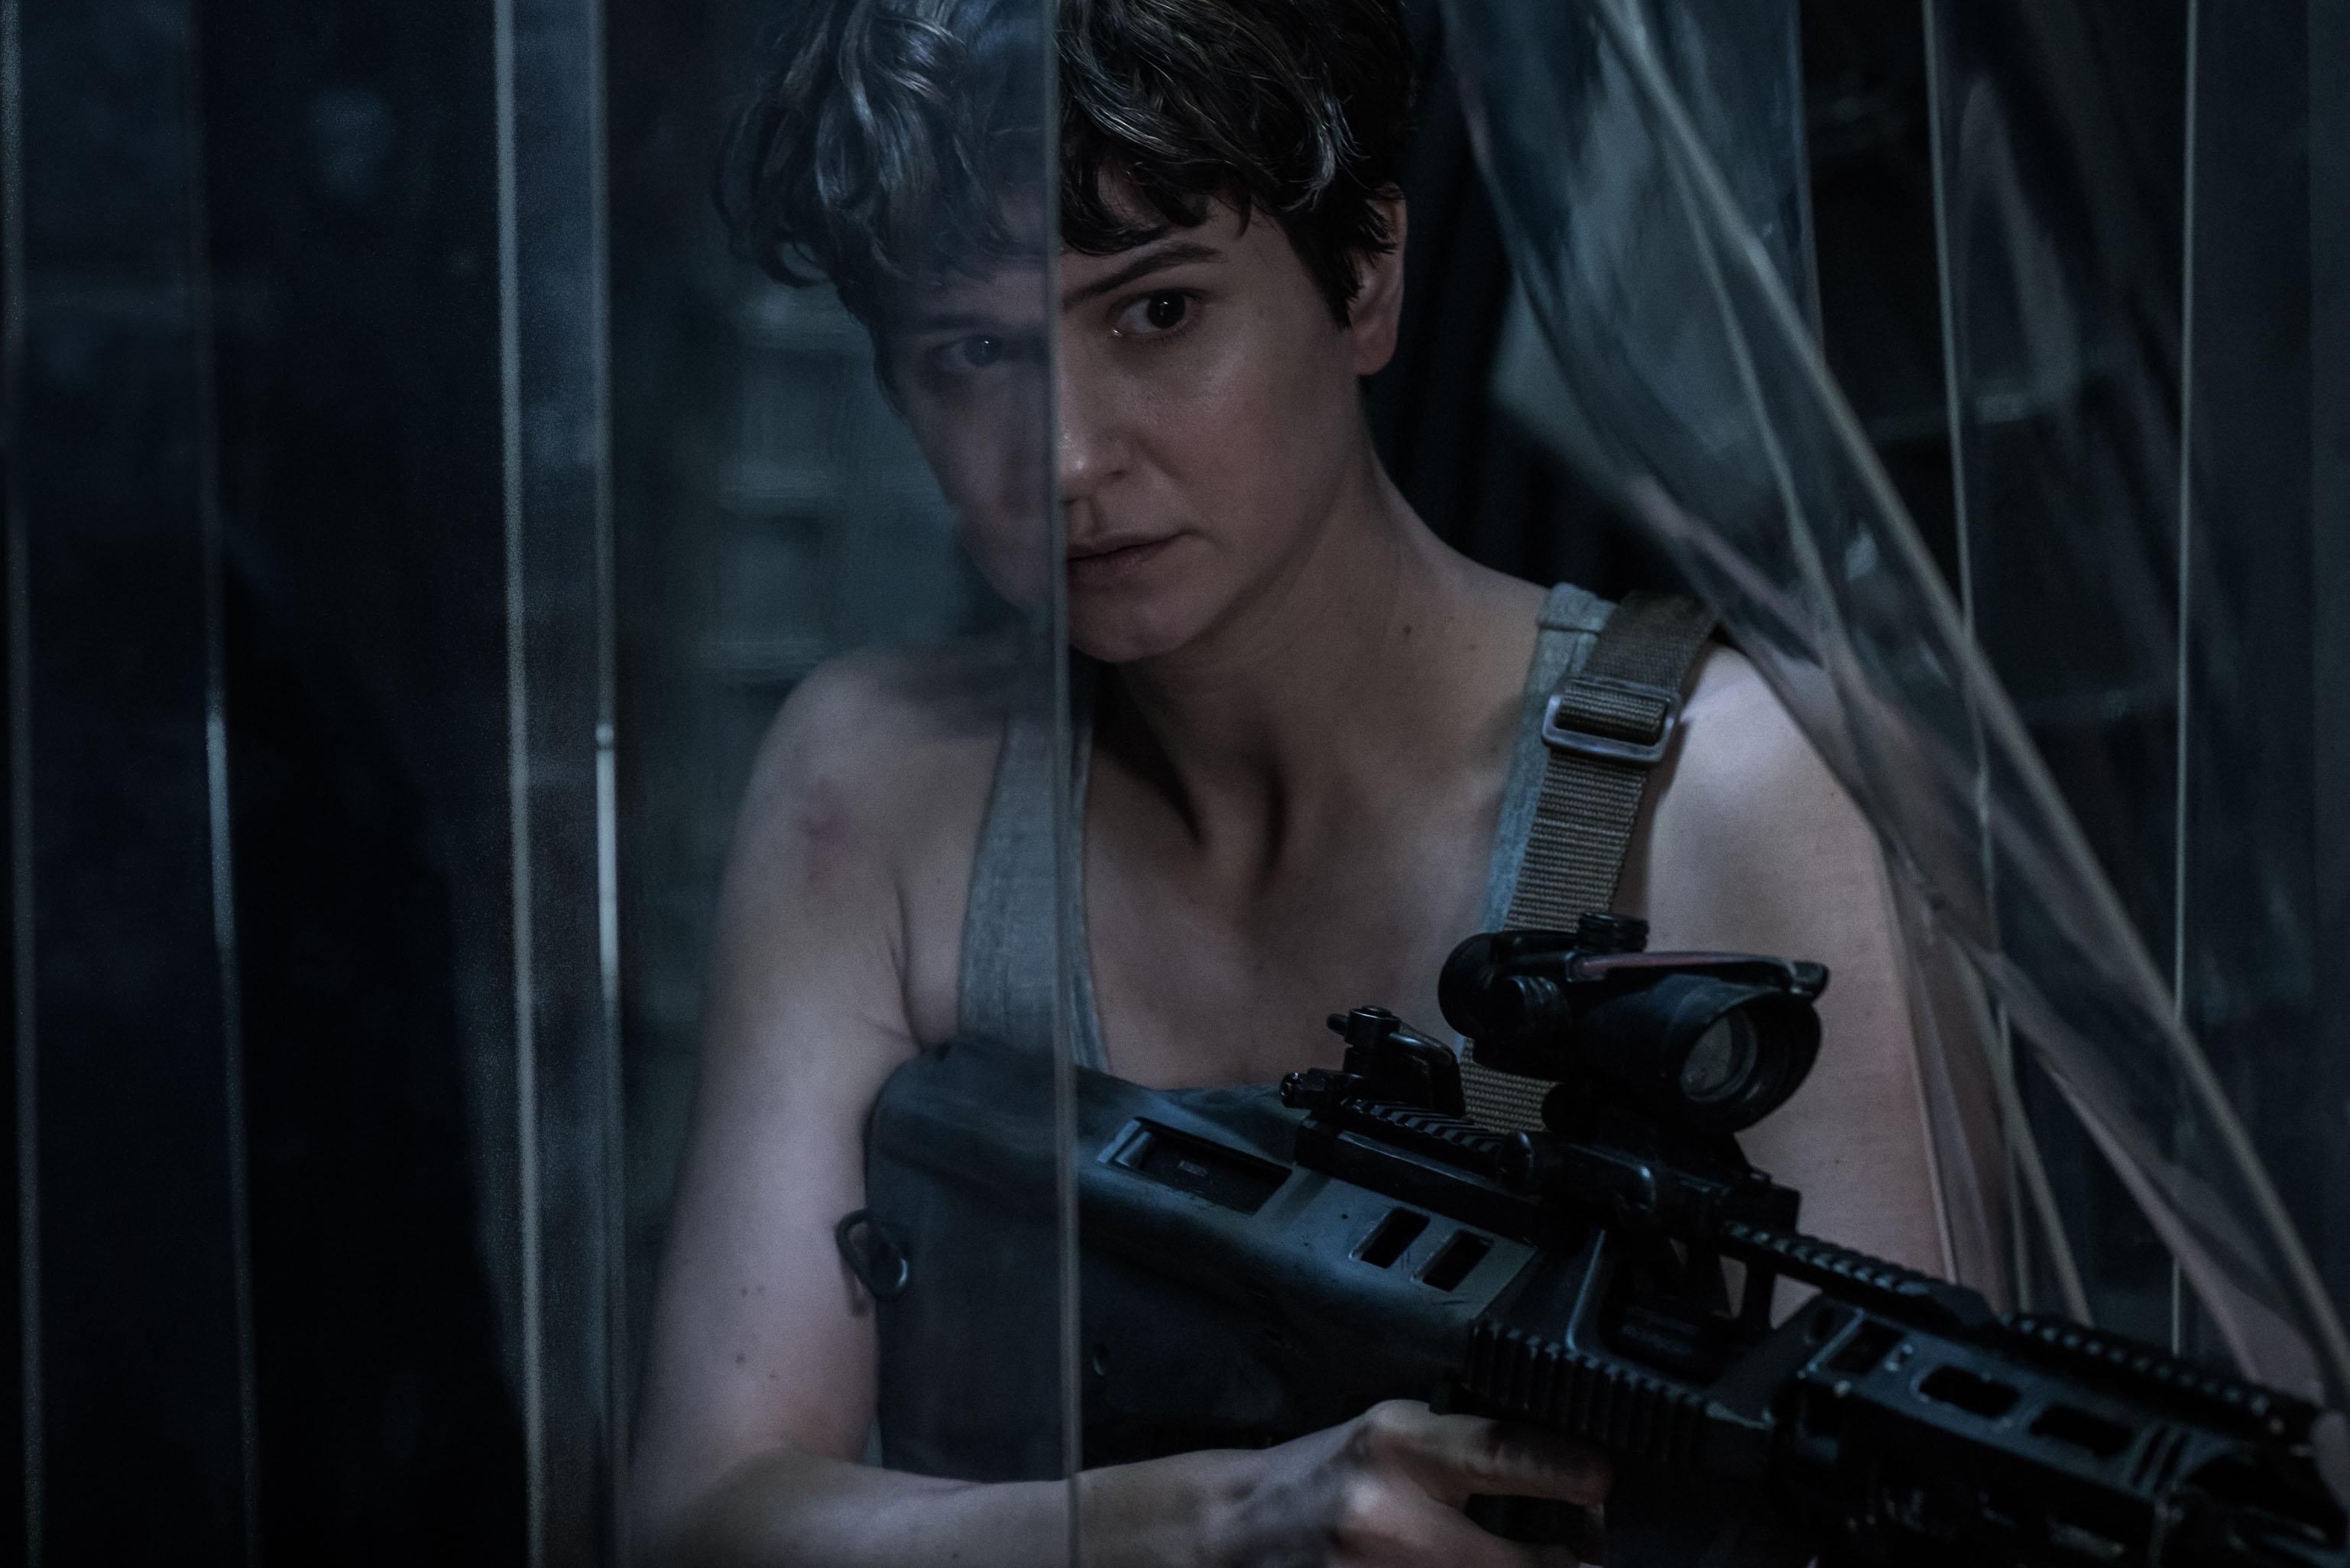 'Alien: Covenant' Trailer Shows Horror Is Alive and Well in Space